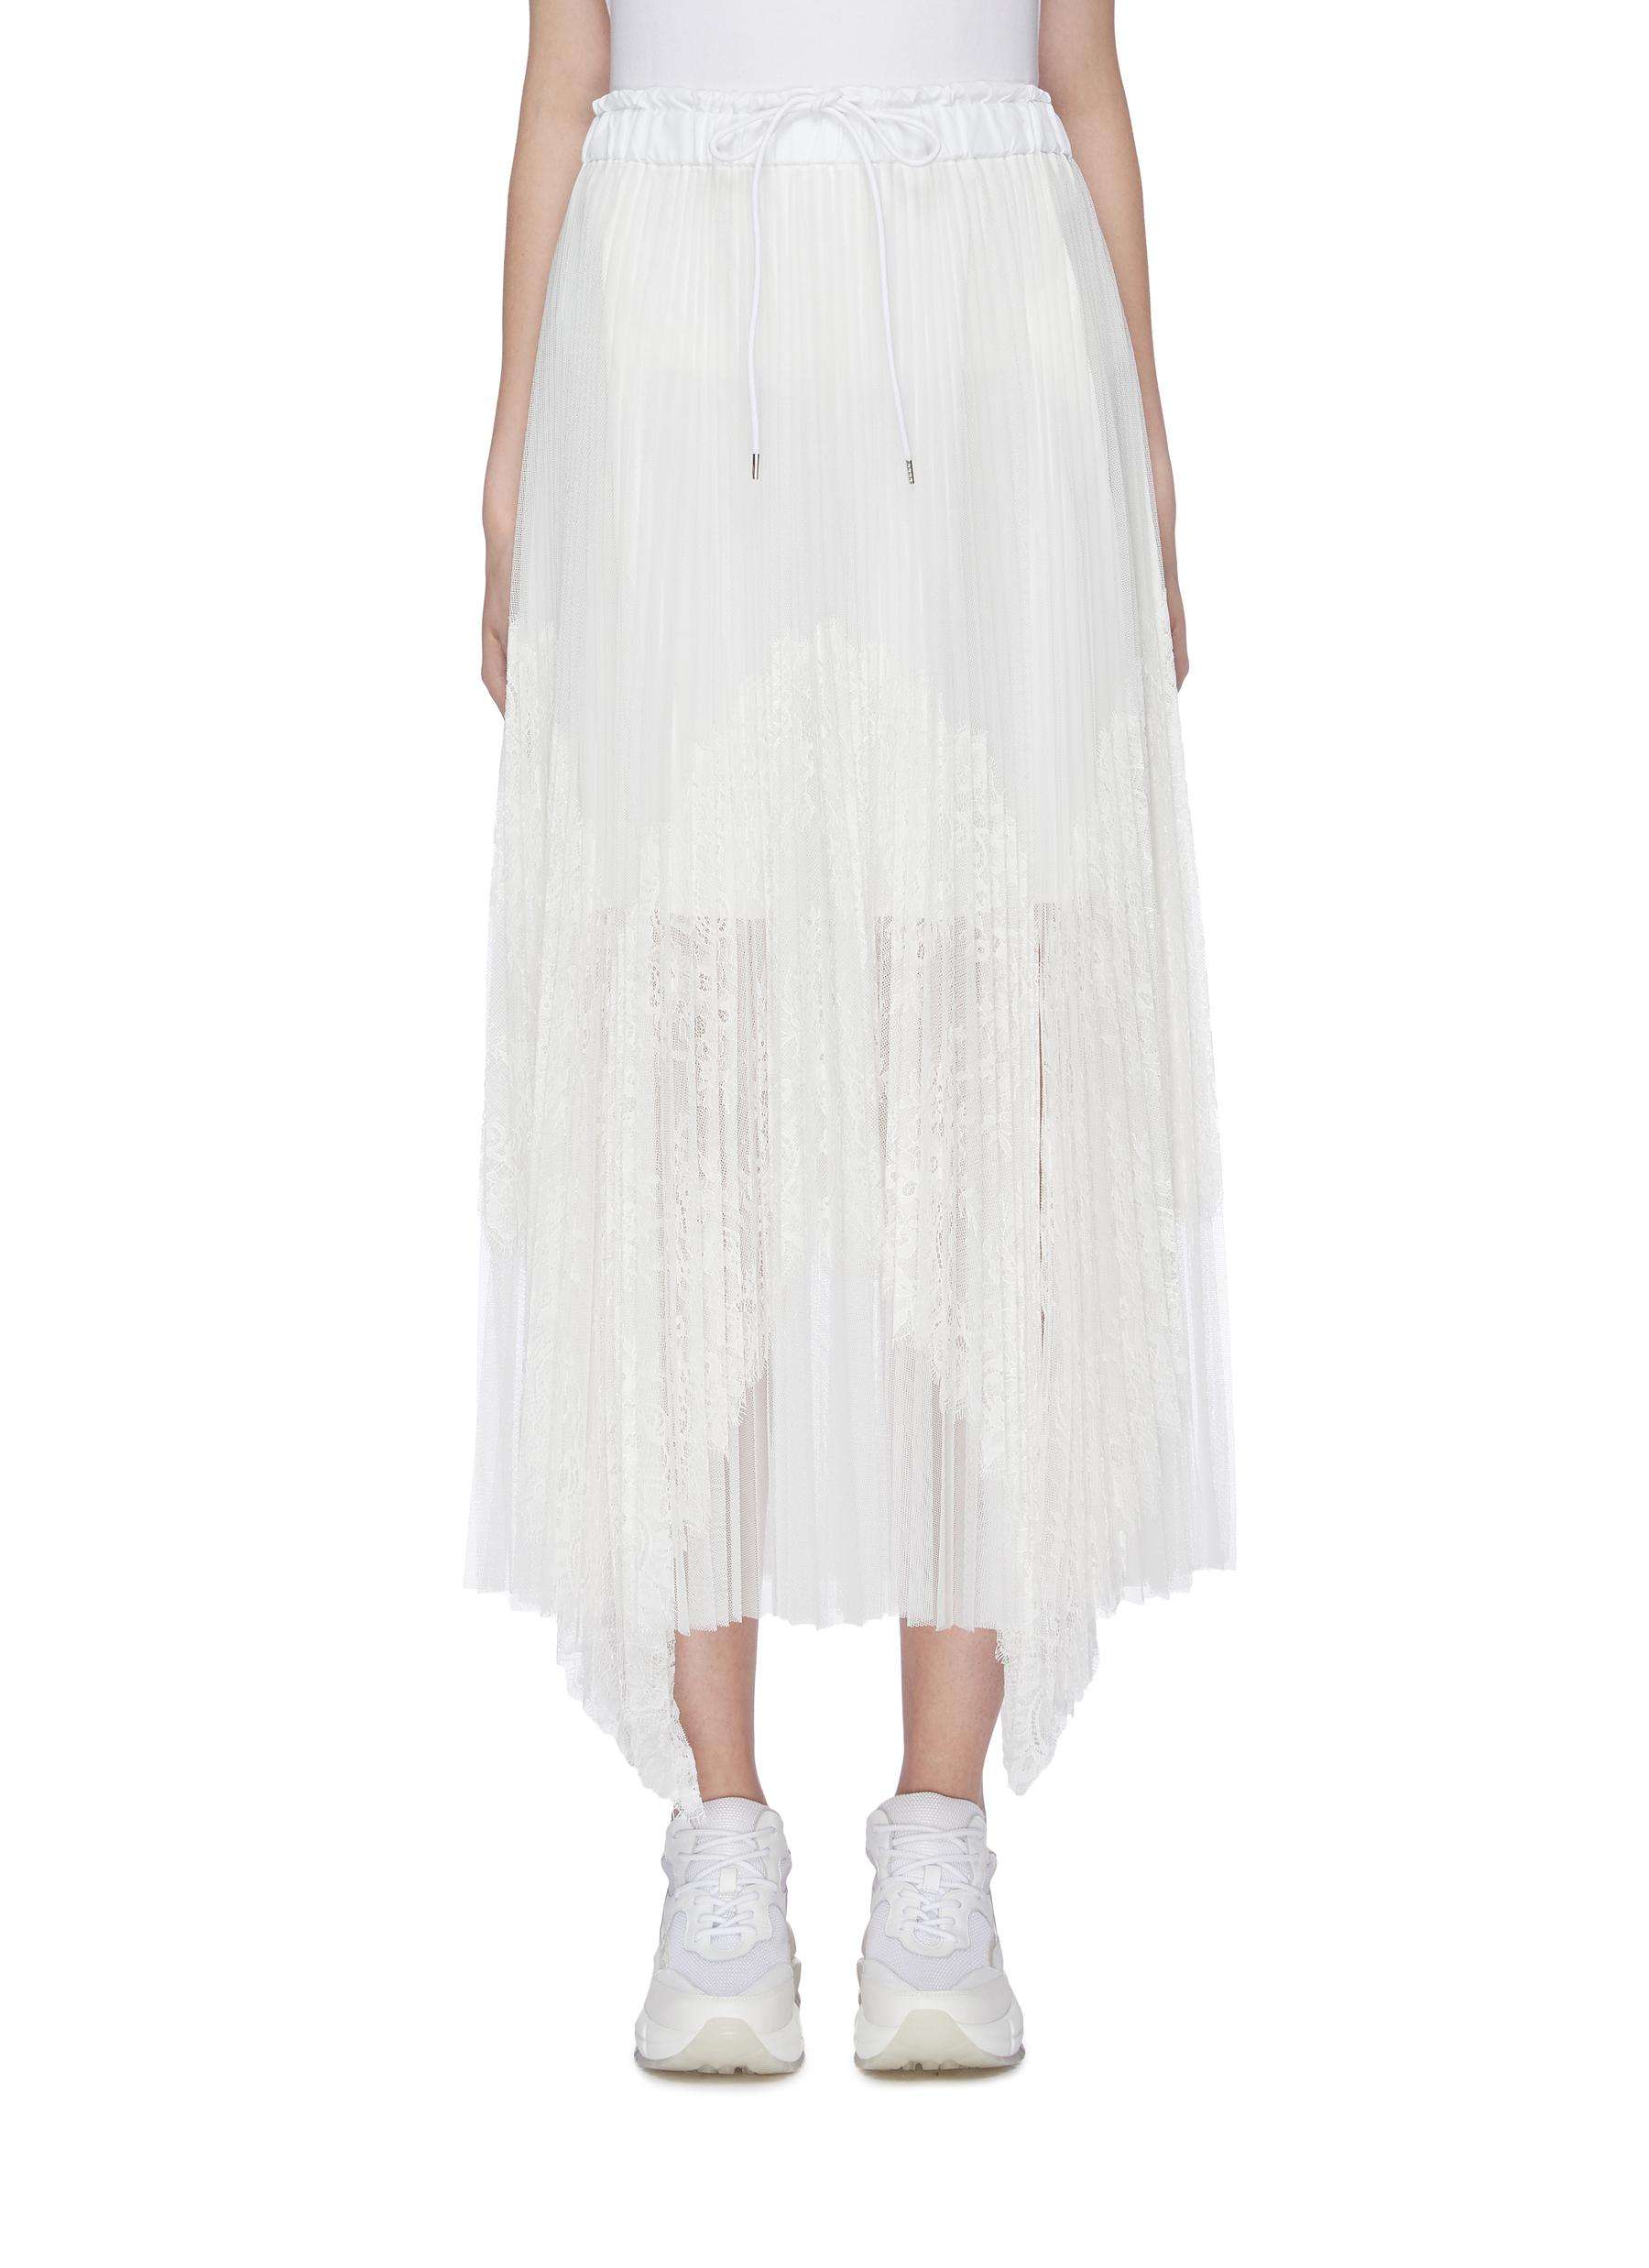 Lace panel pleated handkerchief skirt by Sacai